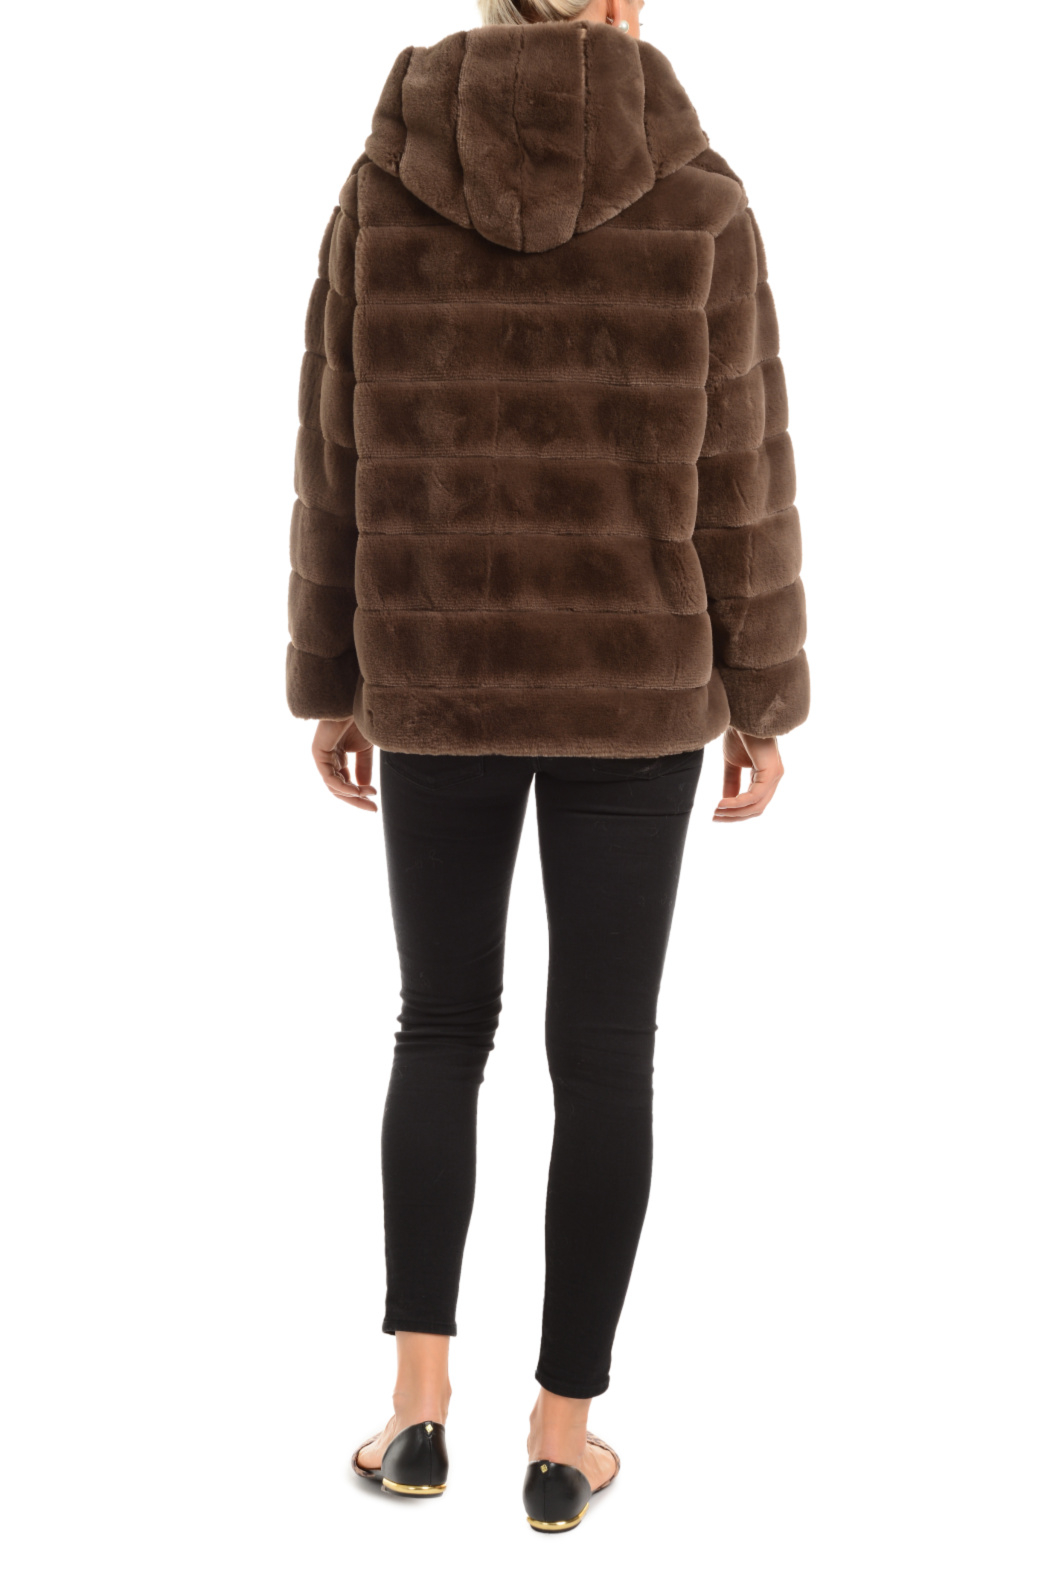 Patty Kim Hooded Lux Faux Fur Coat - Front Full Image